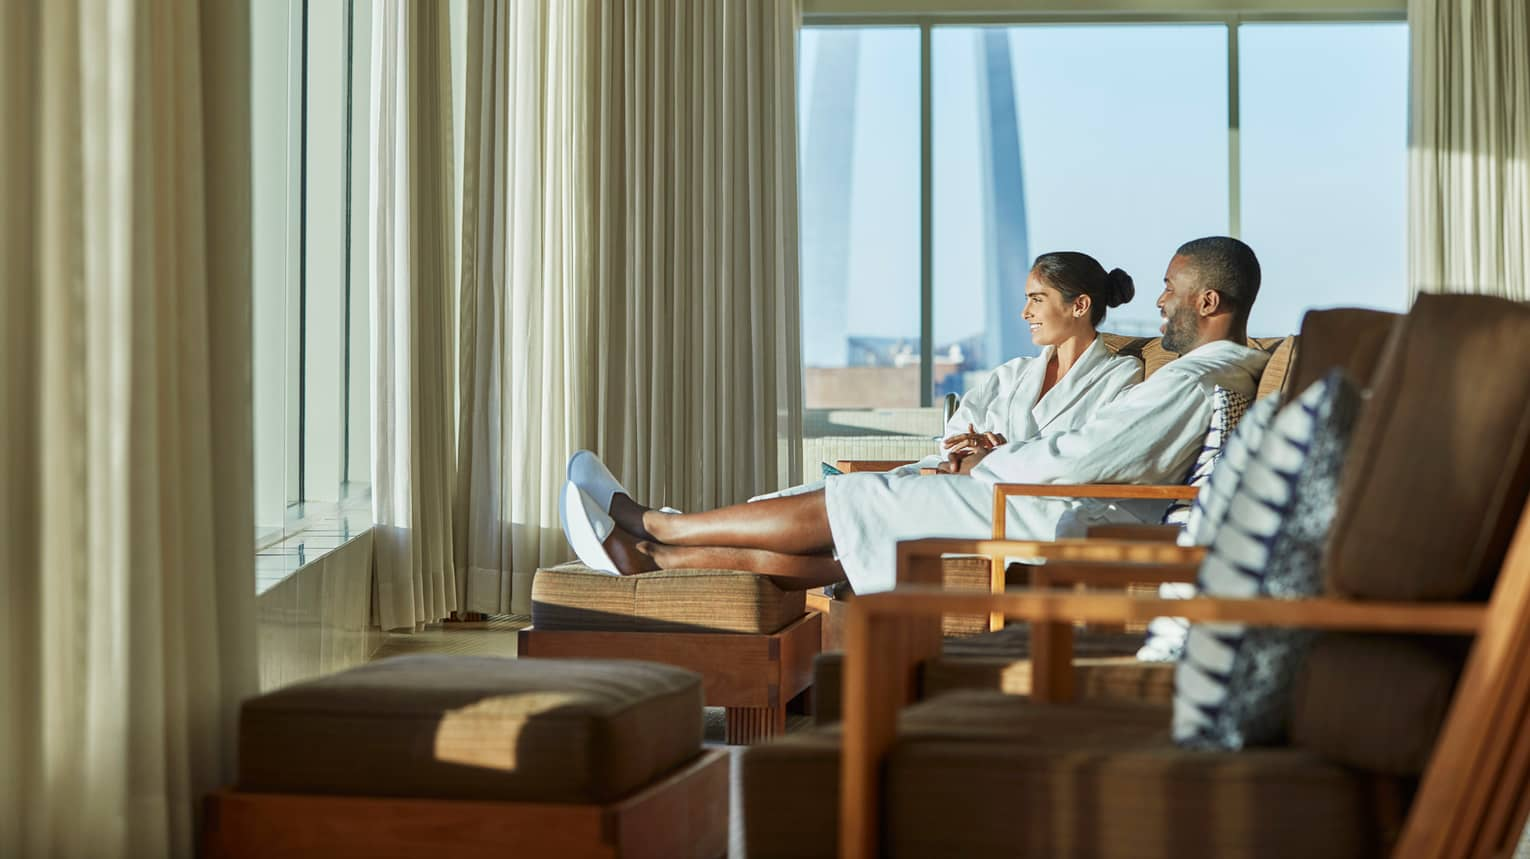 Smiling man and woman in bathrobes and slippers sit on lounge chairs near sunny window